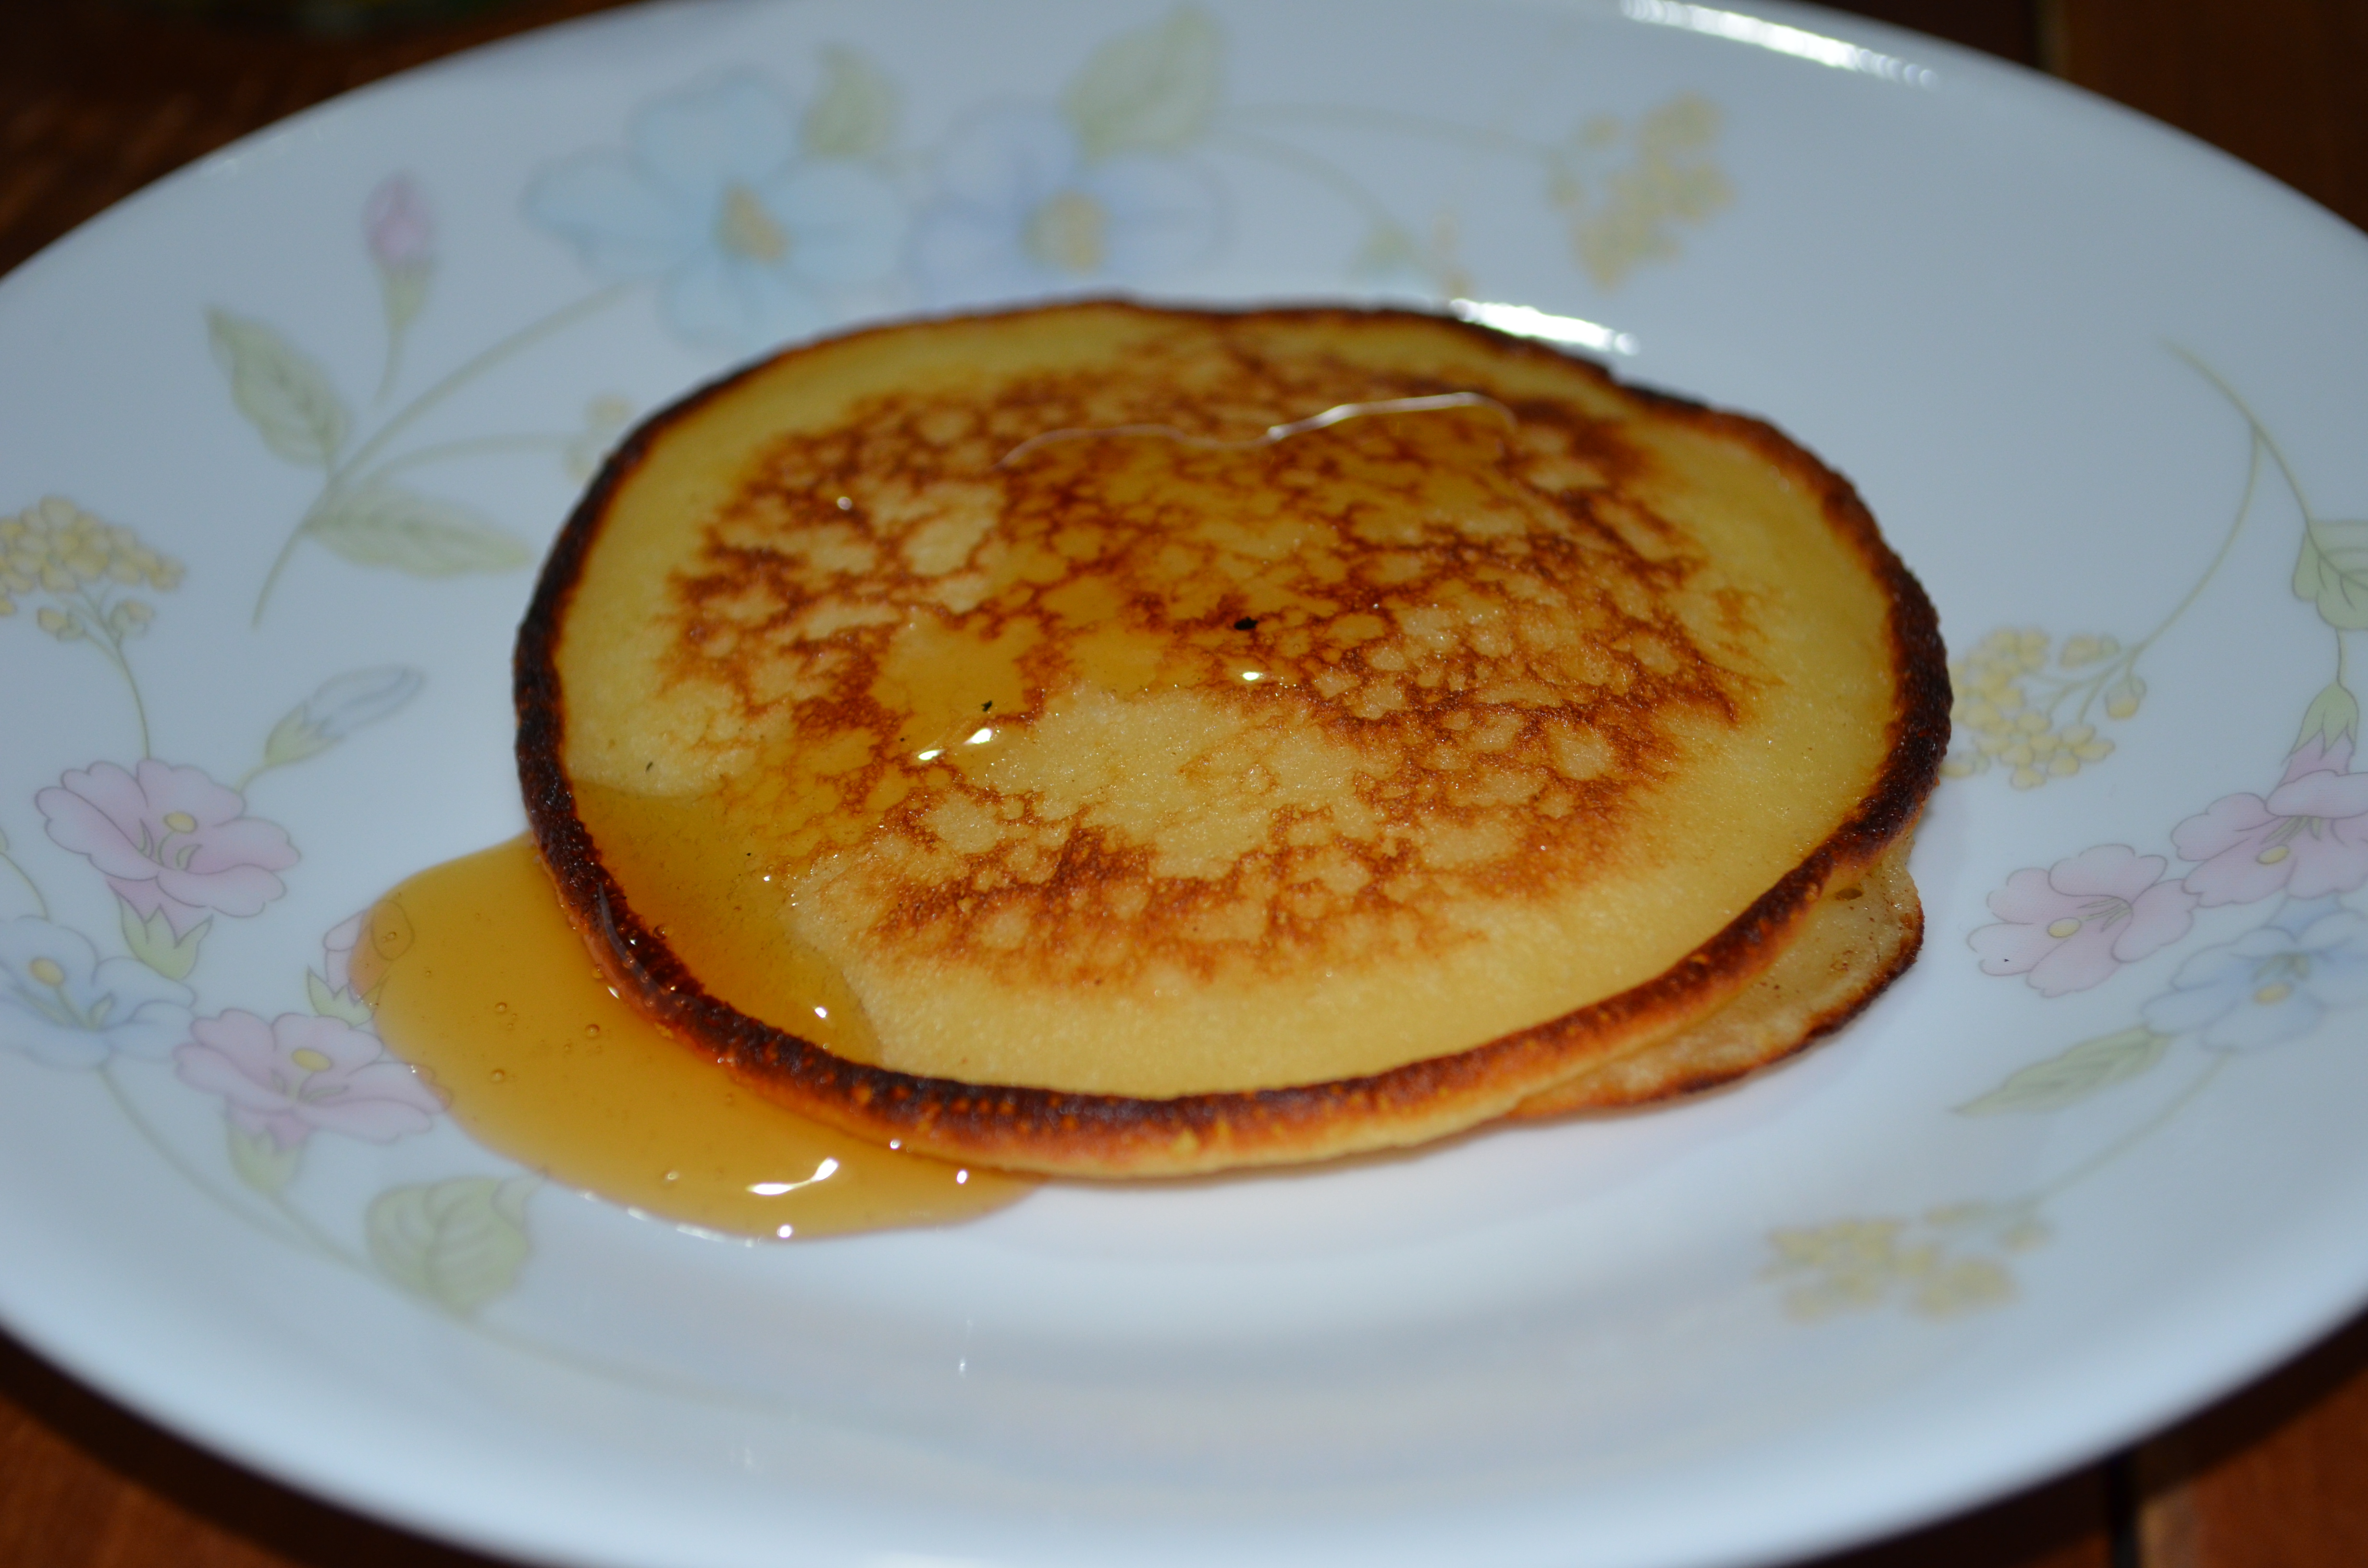 Crumpet and honey... a very tasty meal.